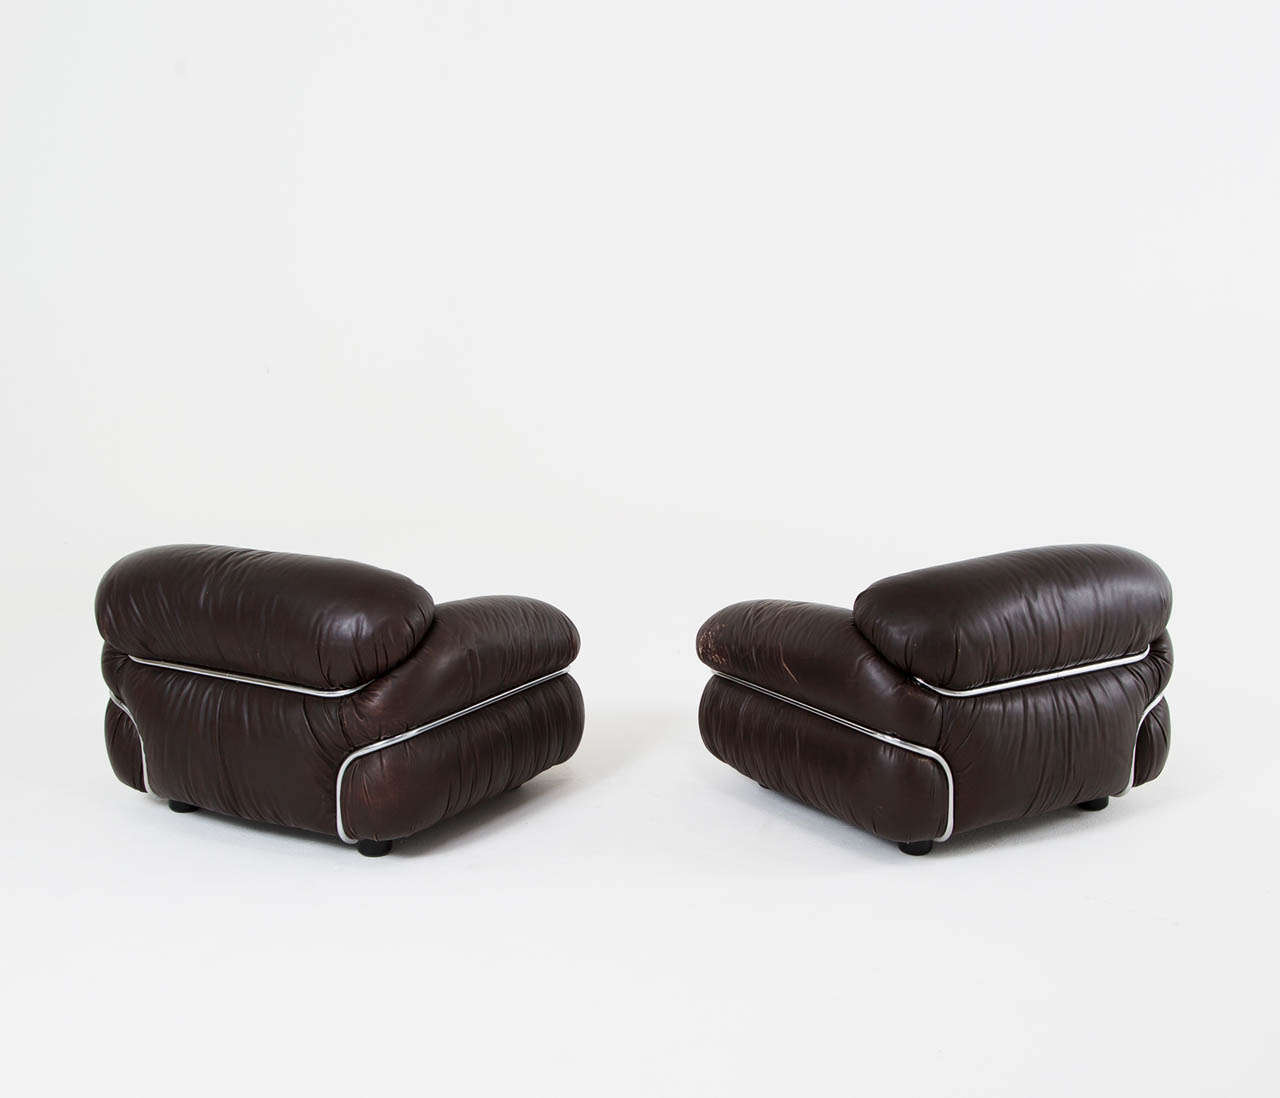 Pair Of Quot Sesann Quot Lounge Chairs By Gianfranco Frattini For